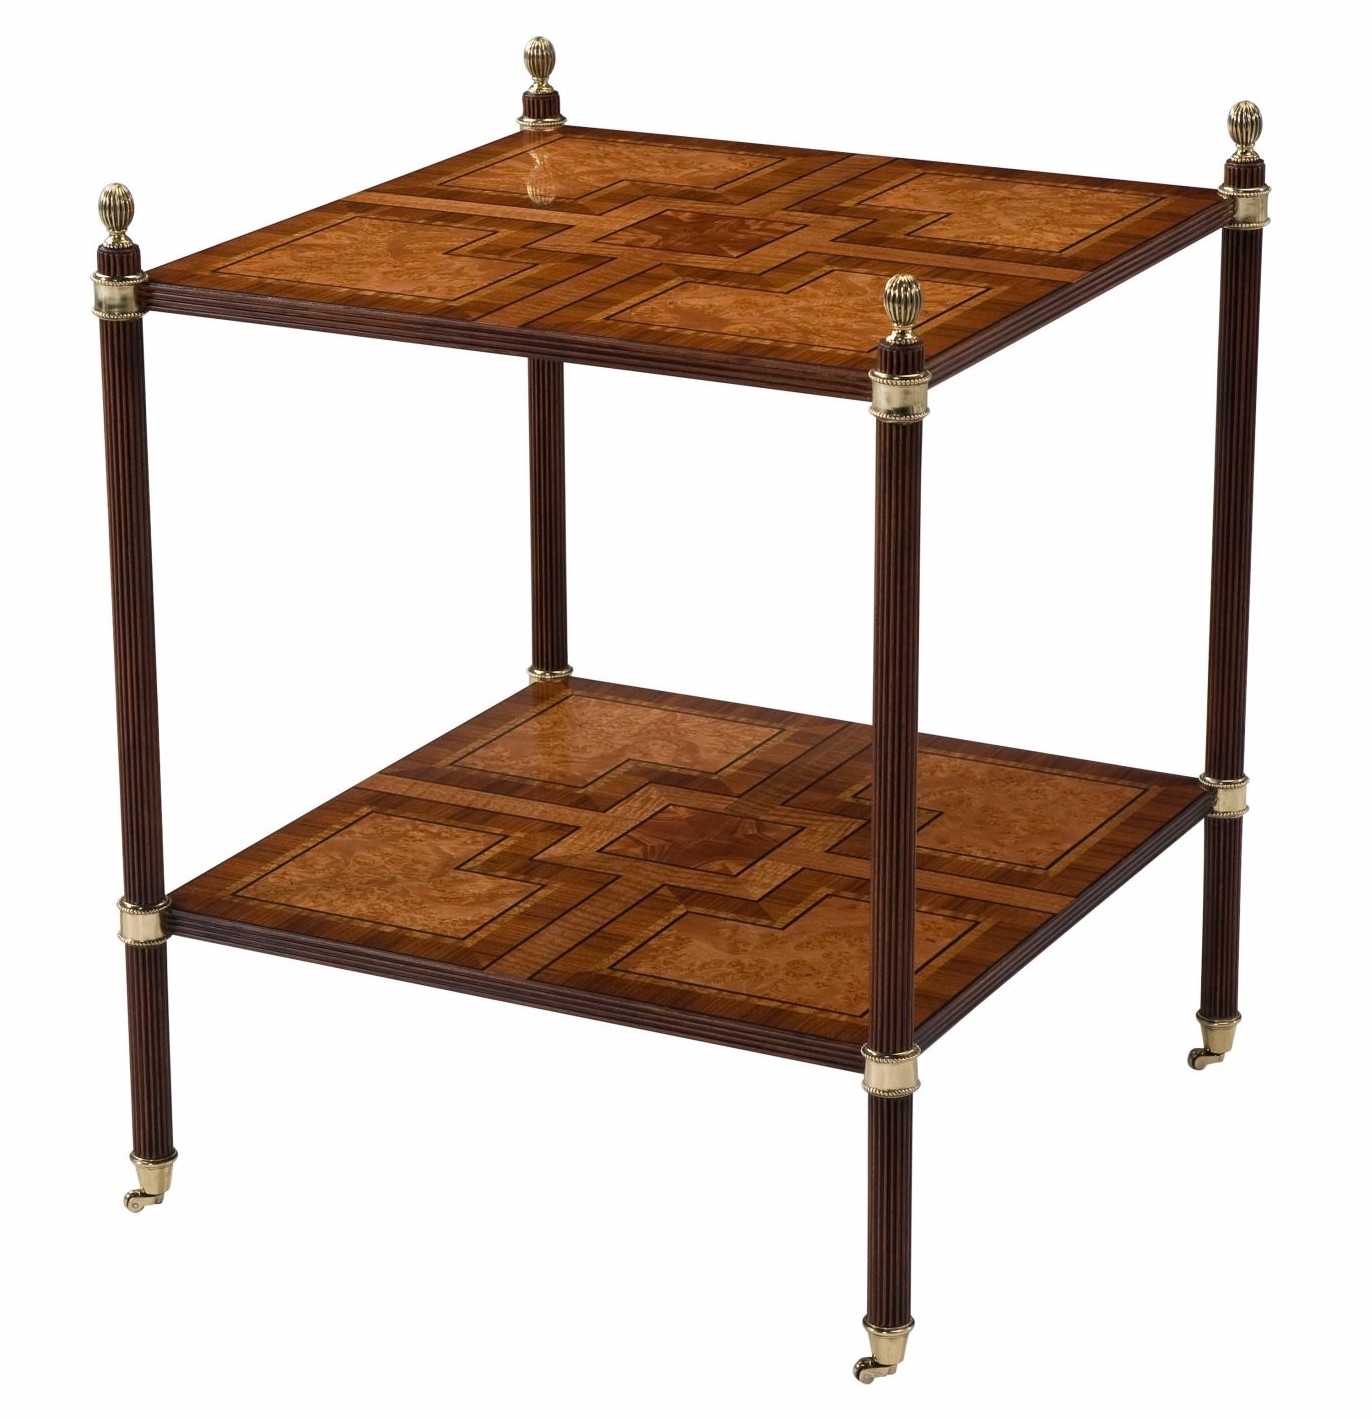 A finely parquetry veneered two tier accent table